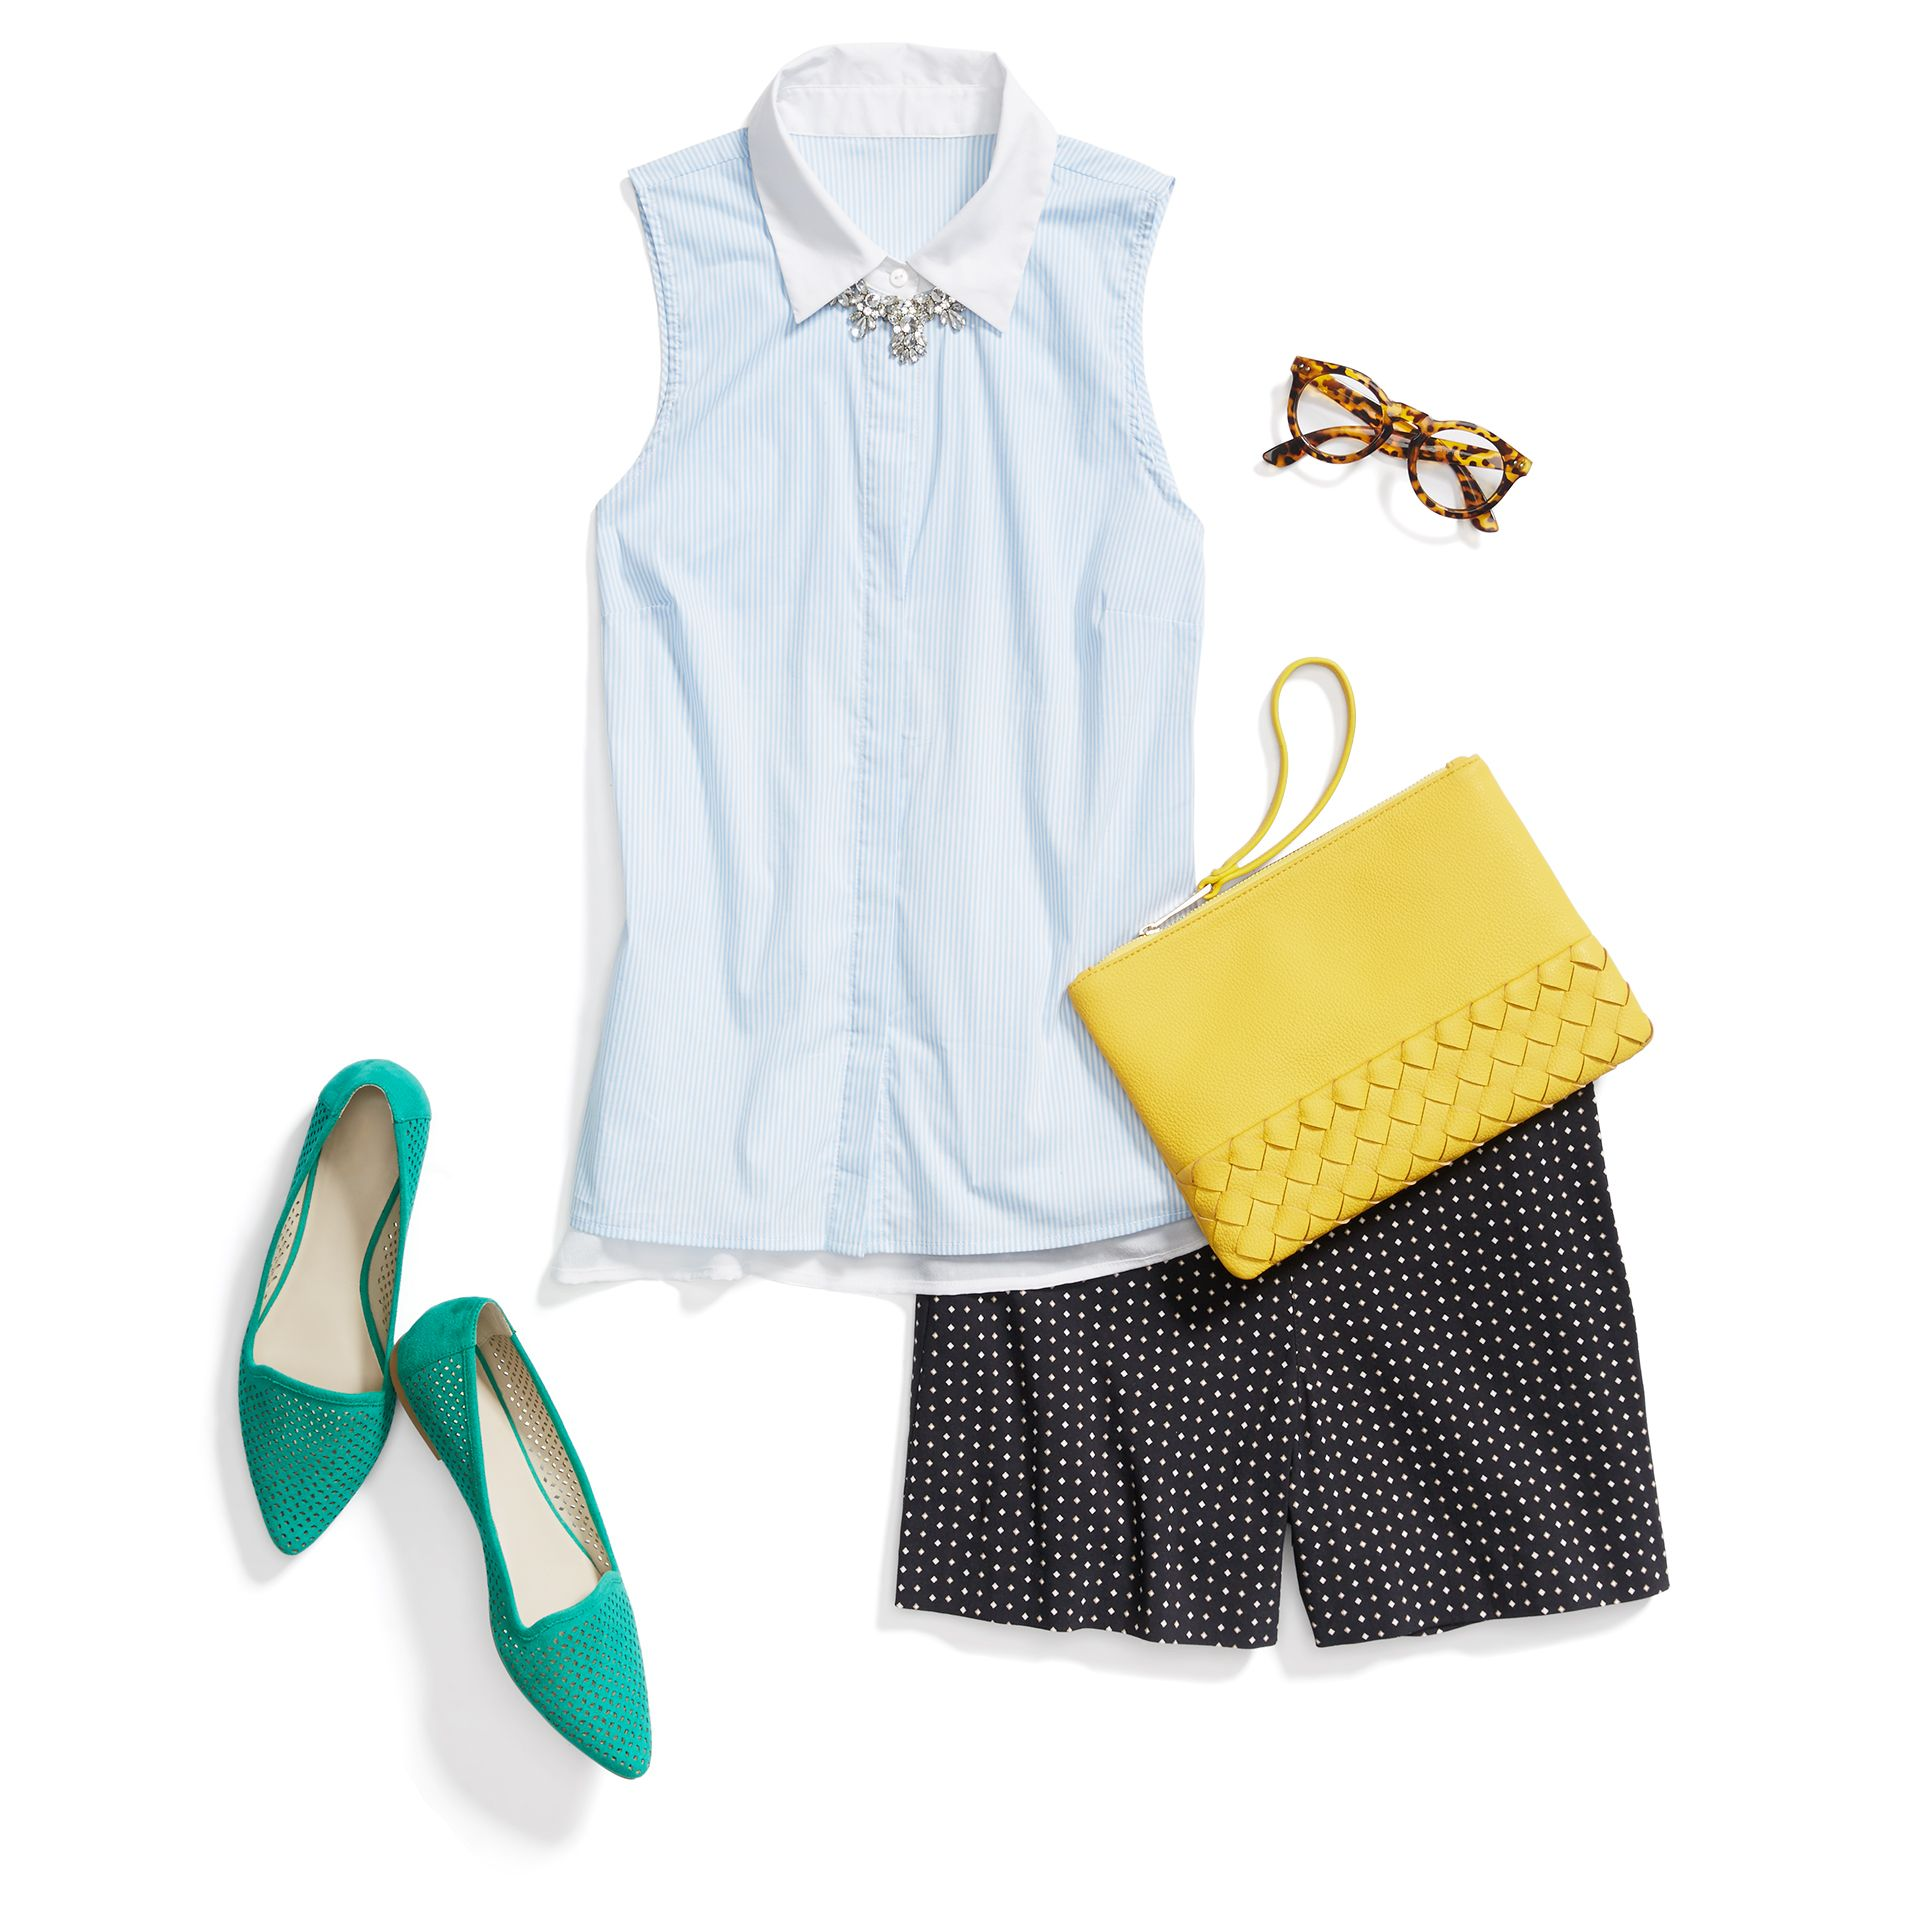 Ahhhh, sunshine. Show off your favorite features with leg-baring looks with bright pops of color.